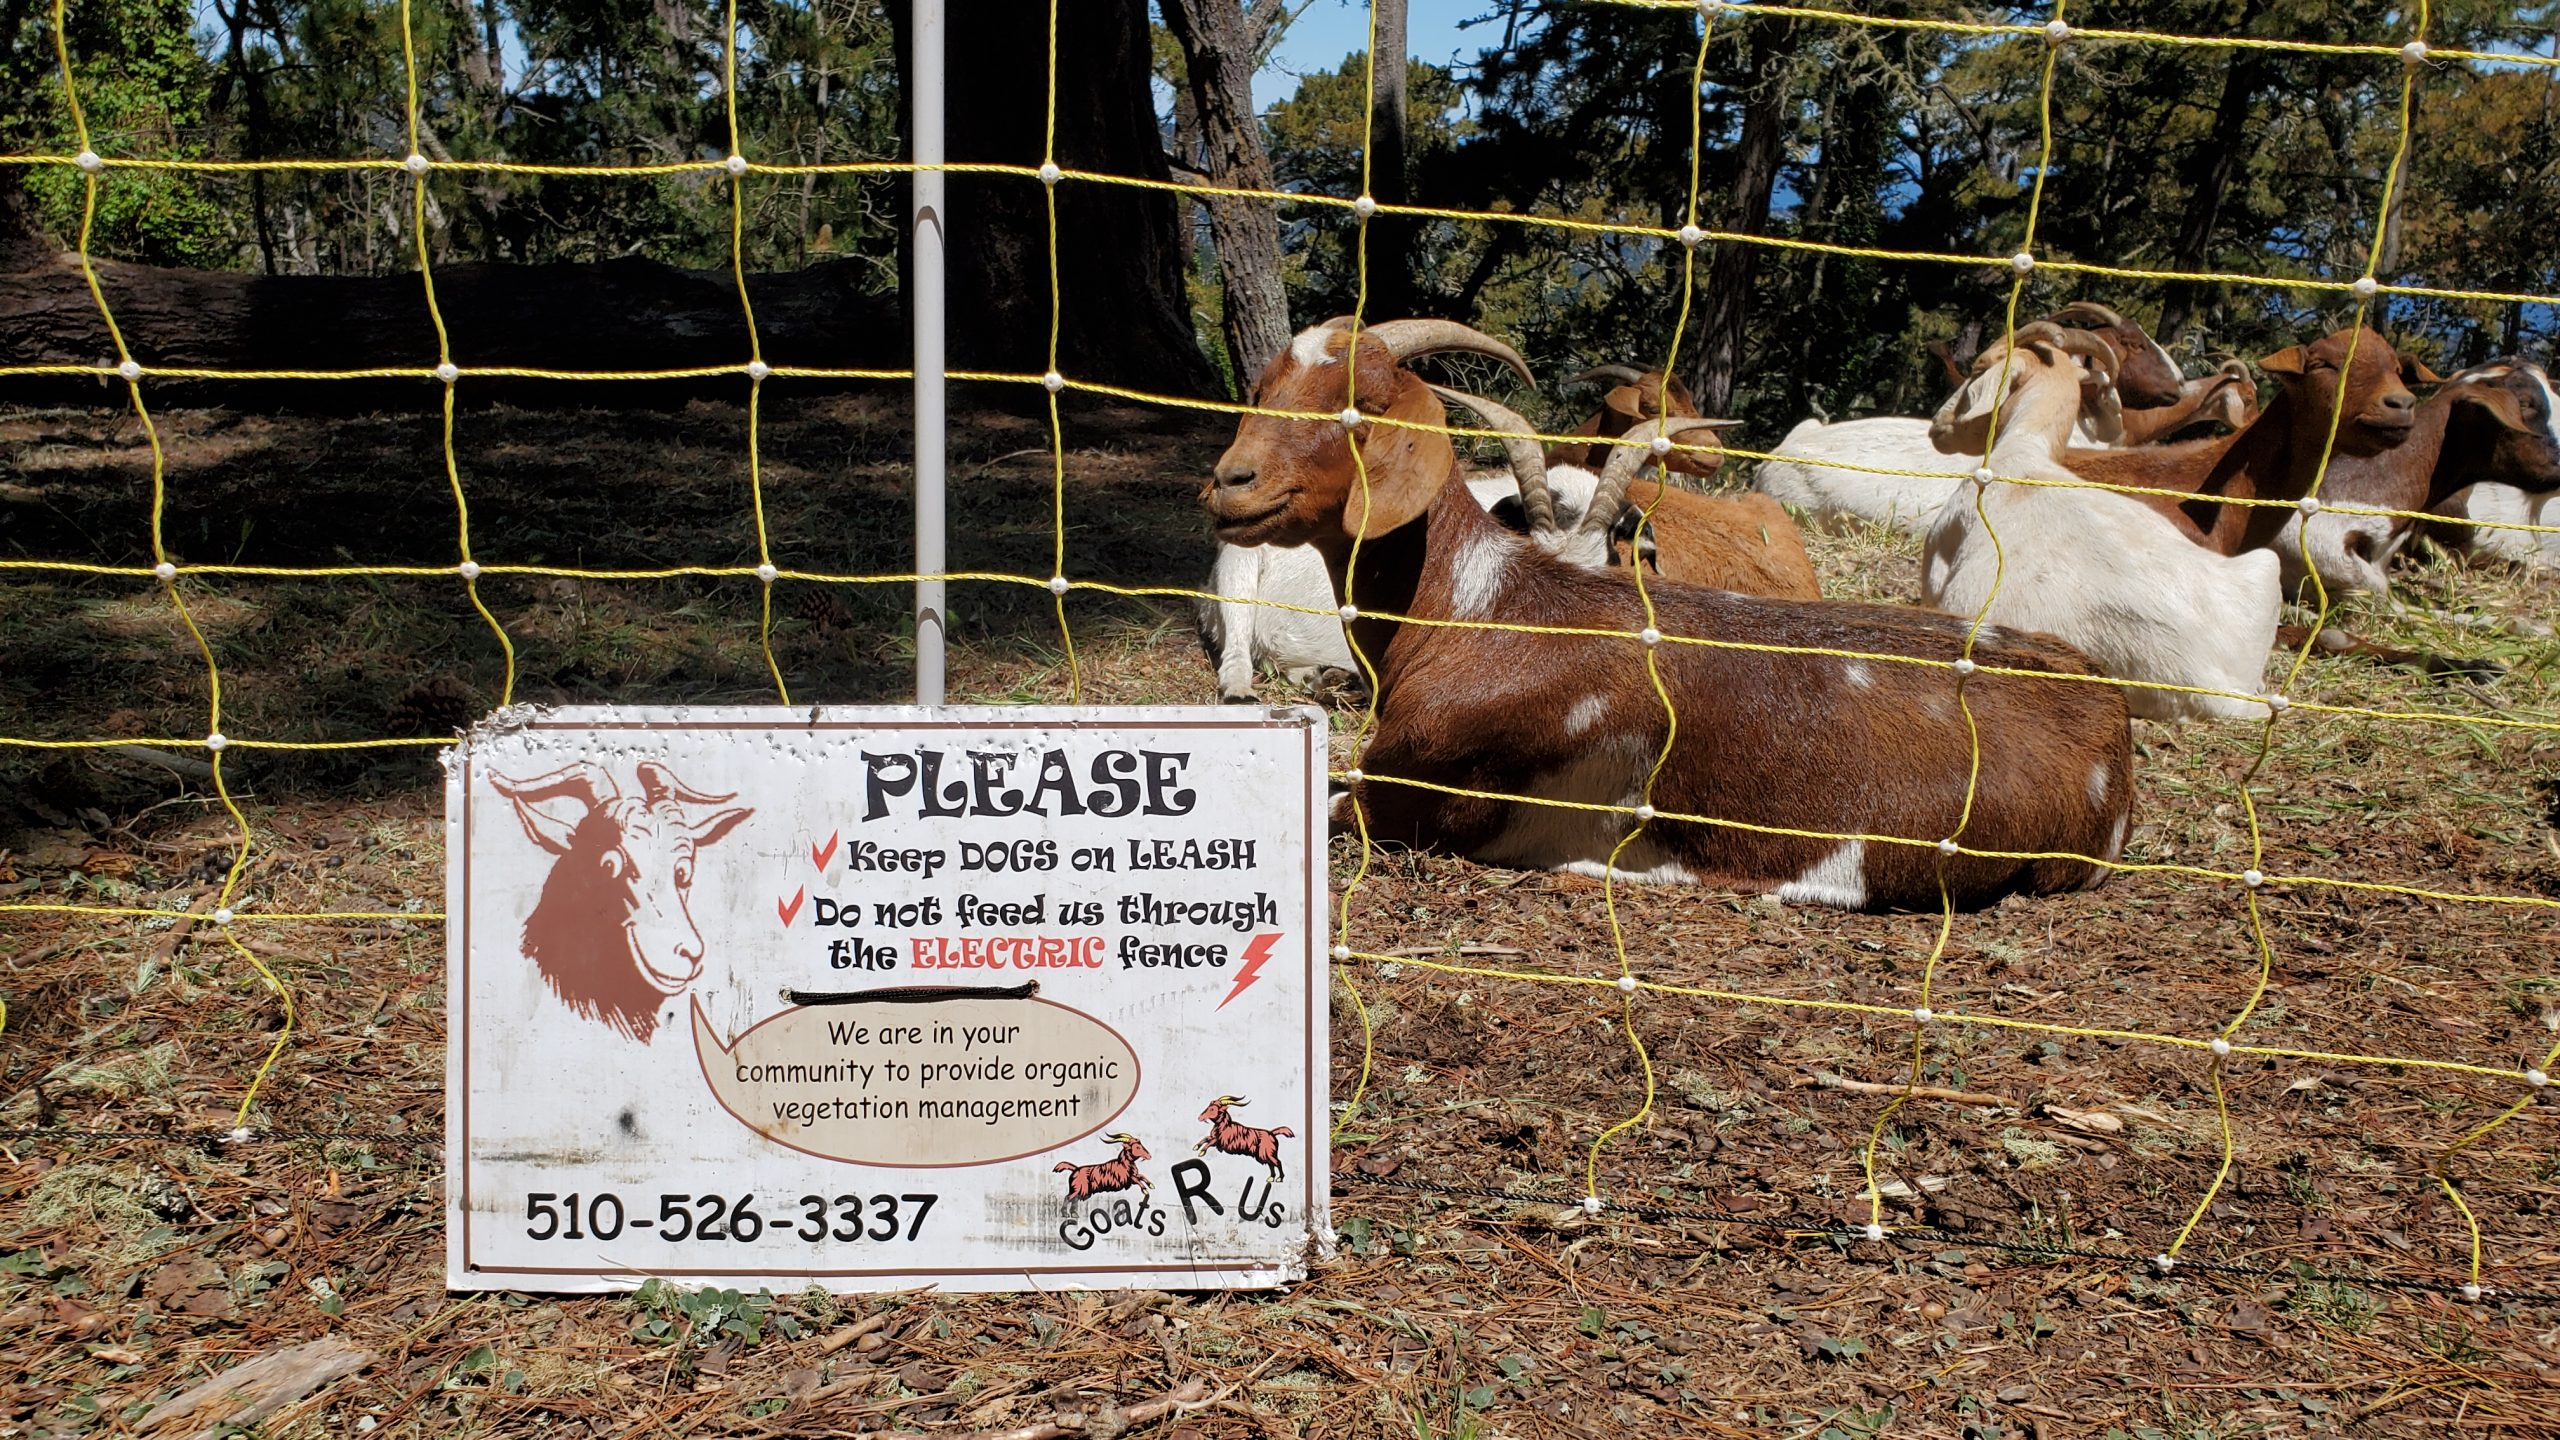 """Goats R Us rents out its goats to provide organic vegetation management. The sign says, """"Please keep dogs on LEASH. Do Not Feed us through the ELECTRIC fence. We re in you community to provide organic vegetation management."""""""